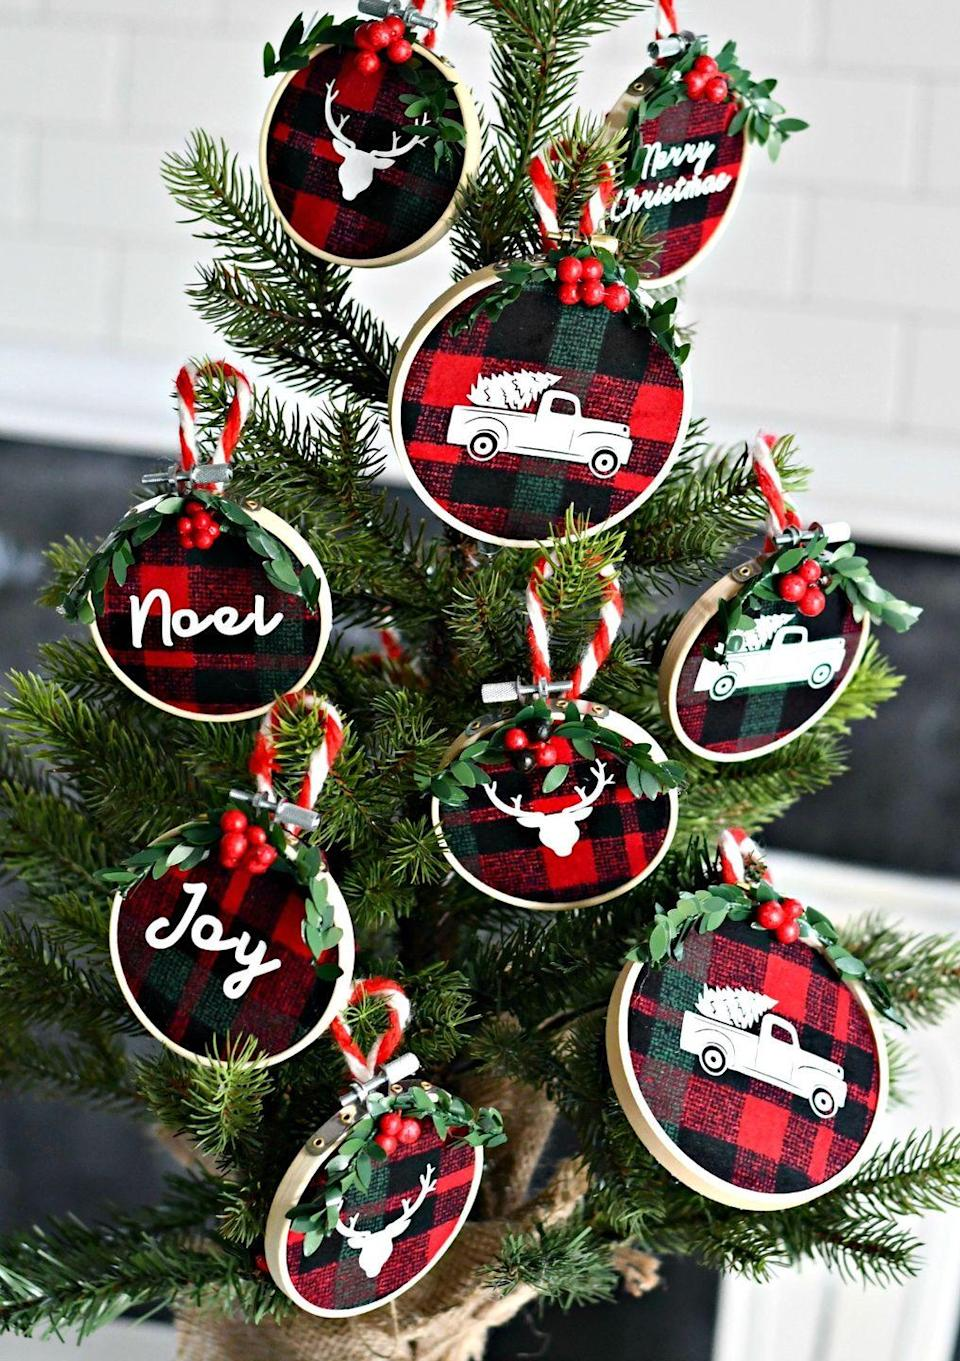 """<p>There's something about flannel that has the word """"Christmas"""" written all over it—so what better fabric to incorporate into your ornaments? For another rustic touch, add your favorite iron-on decals.</p><p><strong>Get the tutorial at <a href=""""https://hip2save.com/diy/diy-embroidery-hoop-christmas-ornaments/"""" rel=""""nofollow noopener"""" target=""""_blank"""" data-ylk=""""slk:Hip2Save"""" class=""""link rapid-noclick-resp"""">Hip2Save</a>.</strong></p><p><a class=""""link rapid-noclick-resp"""" href=""""https://www.amazon.com/Robert-Kaufman-Mammoth-Flannel-Buffalo/dp/B0130EH33Y/ref=sr_1_3?tag=syn-yahoo-20&ascsubtag=%5Bartid%7C10050.g.1070%5Bsrc%7Cyahoo-us"""" rel=""""nofollow noopener"""" target=""""_blank"""" data-ylk=""""slk:SHOP FLANNEL FABRIC"""">SHOP FLANNEL FABRIC</a></p>"""